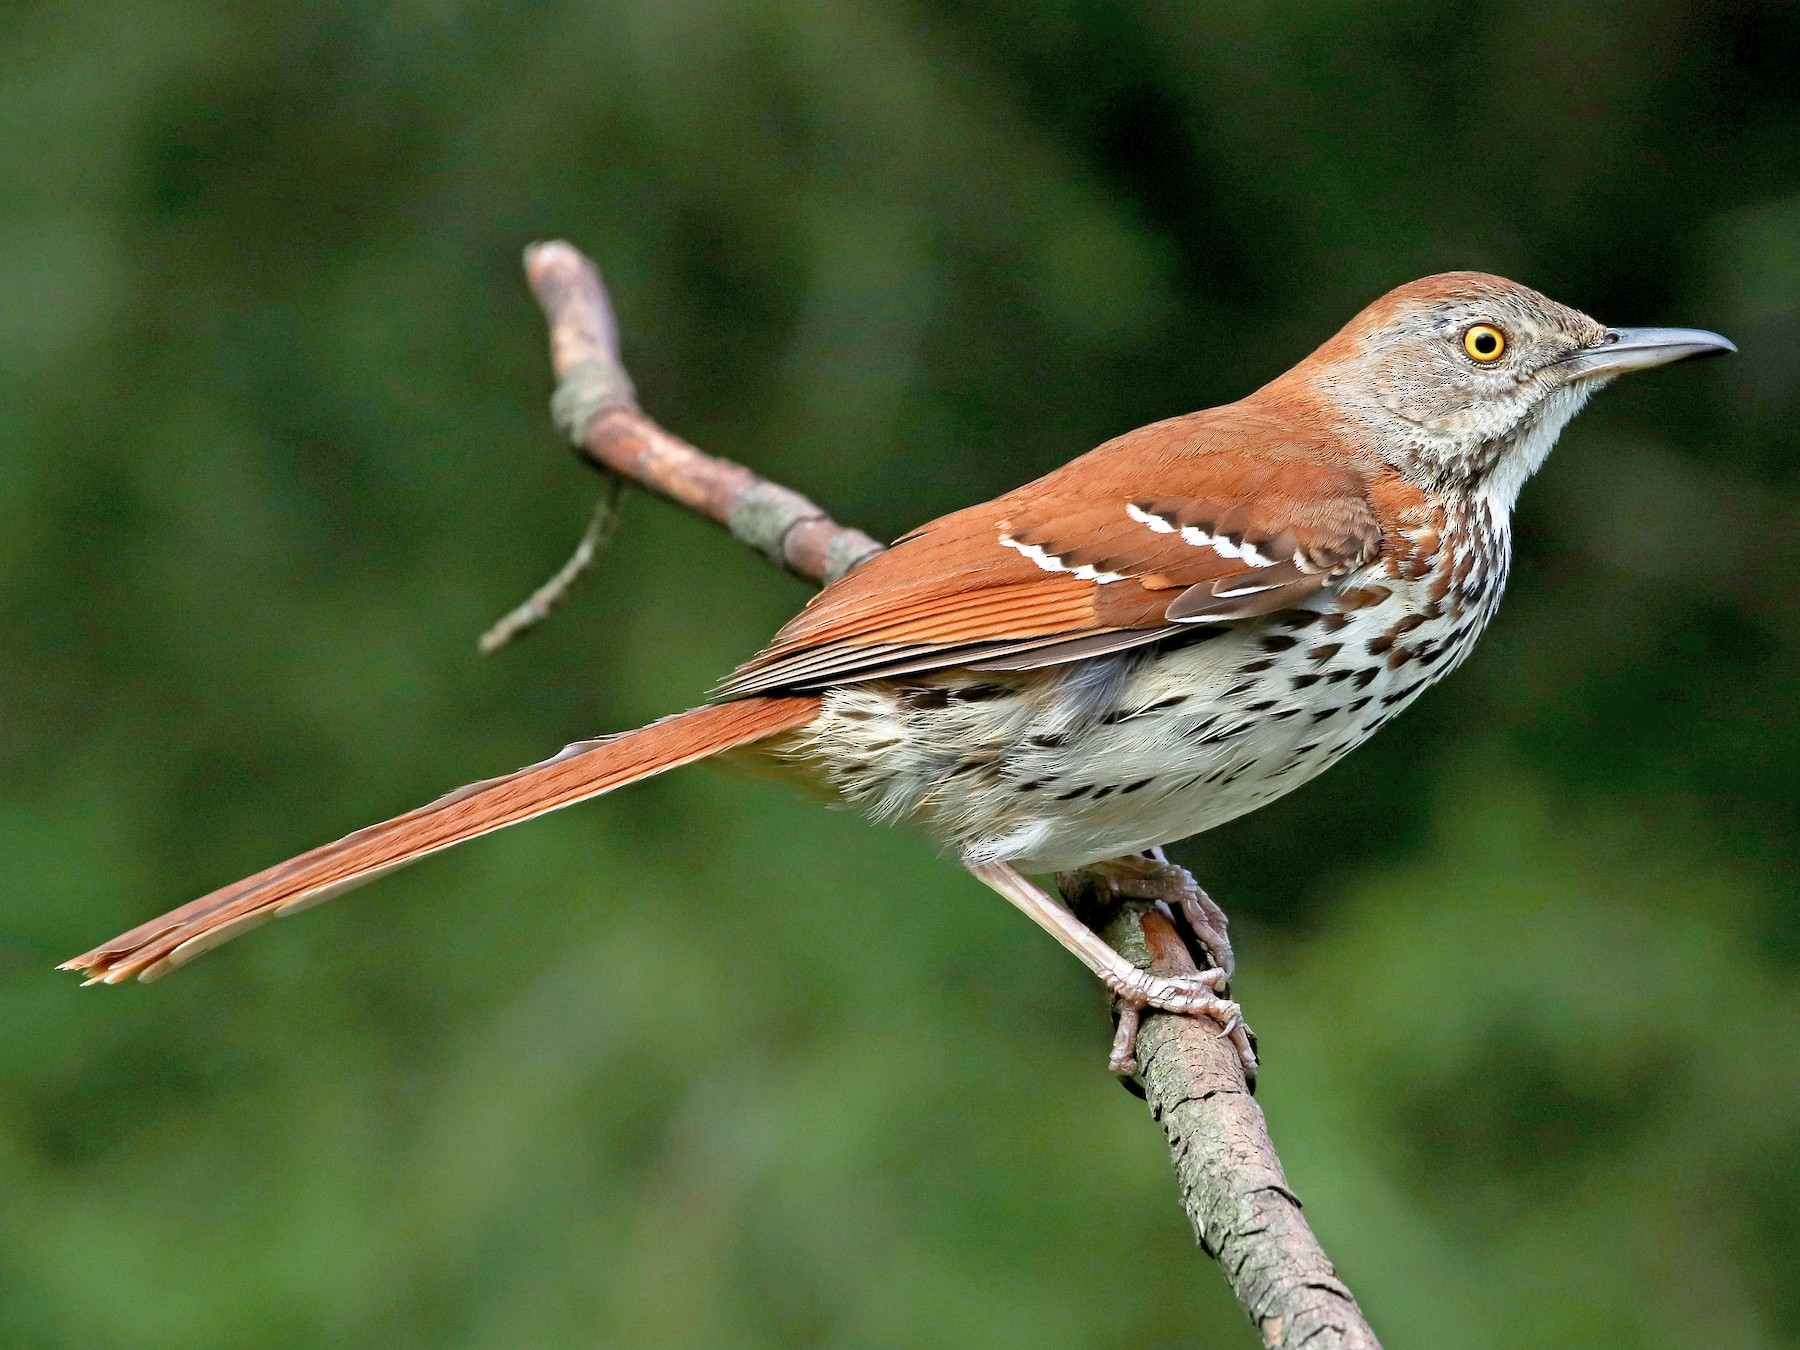 Brown Thrasher - Martina Nordstrand